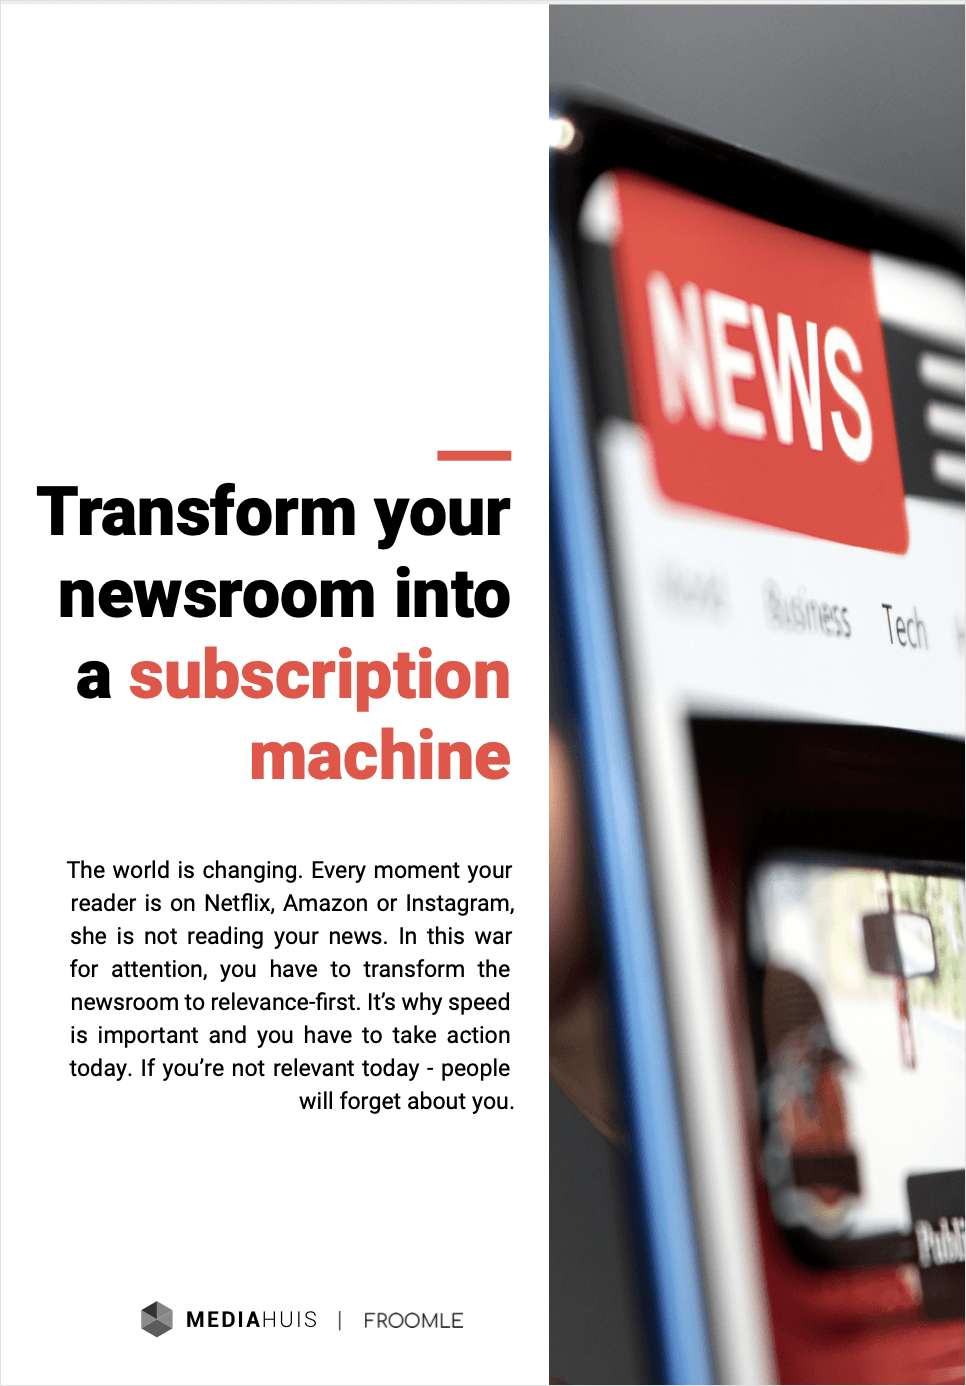 Transform Your Newsroom Into a Subscription Machine